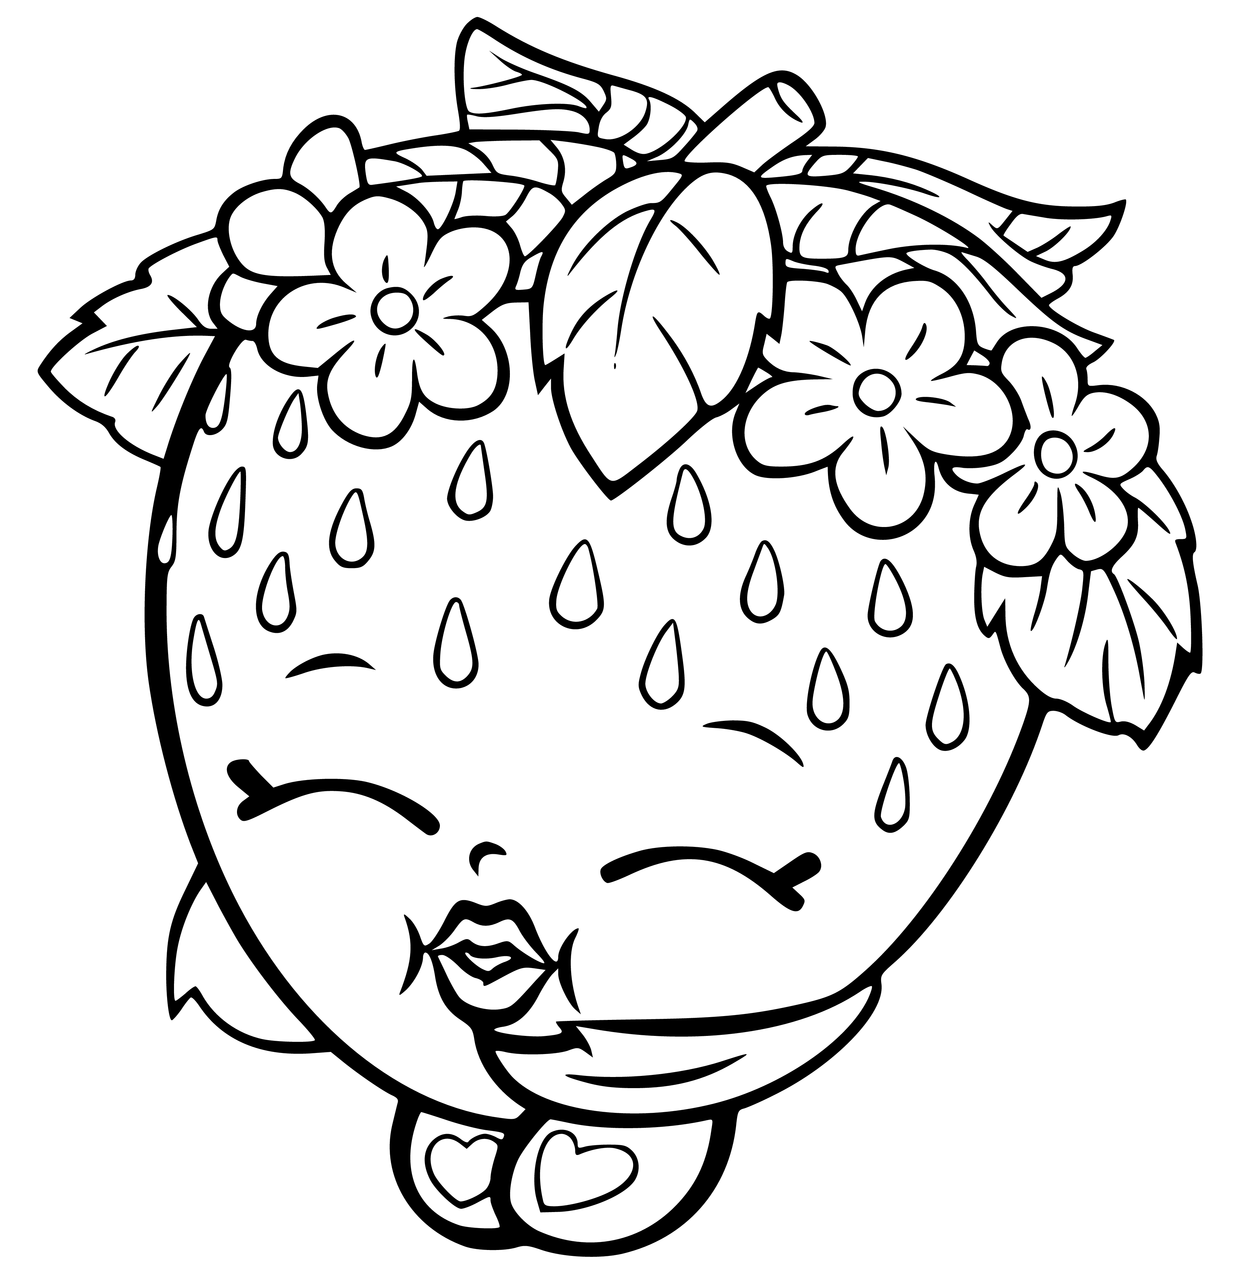 Shopkins coloring pages best coloring pages for kids for Coloring book pages free